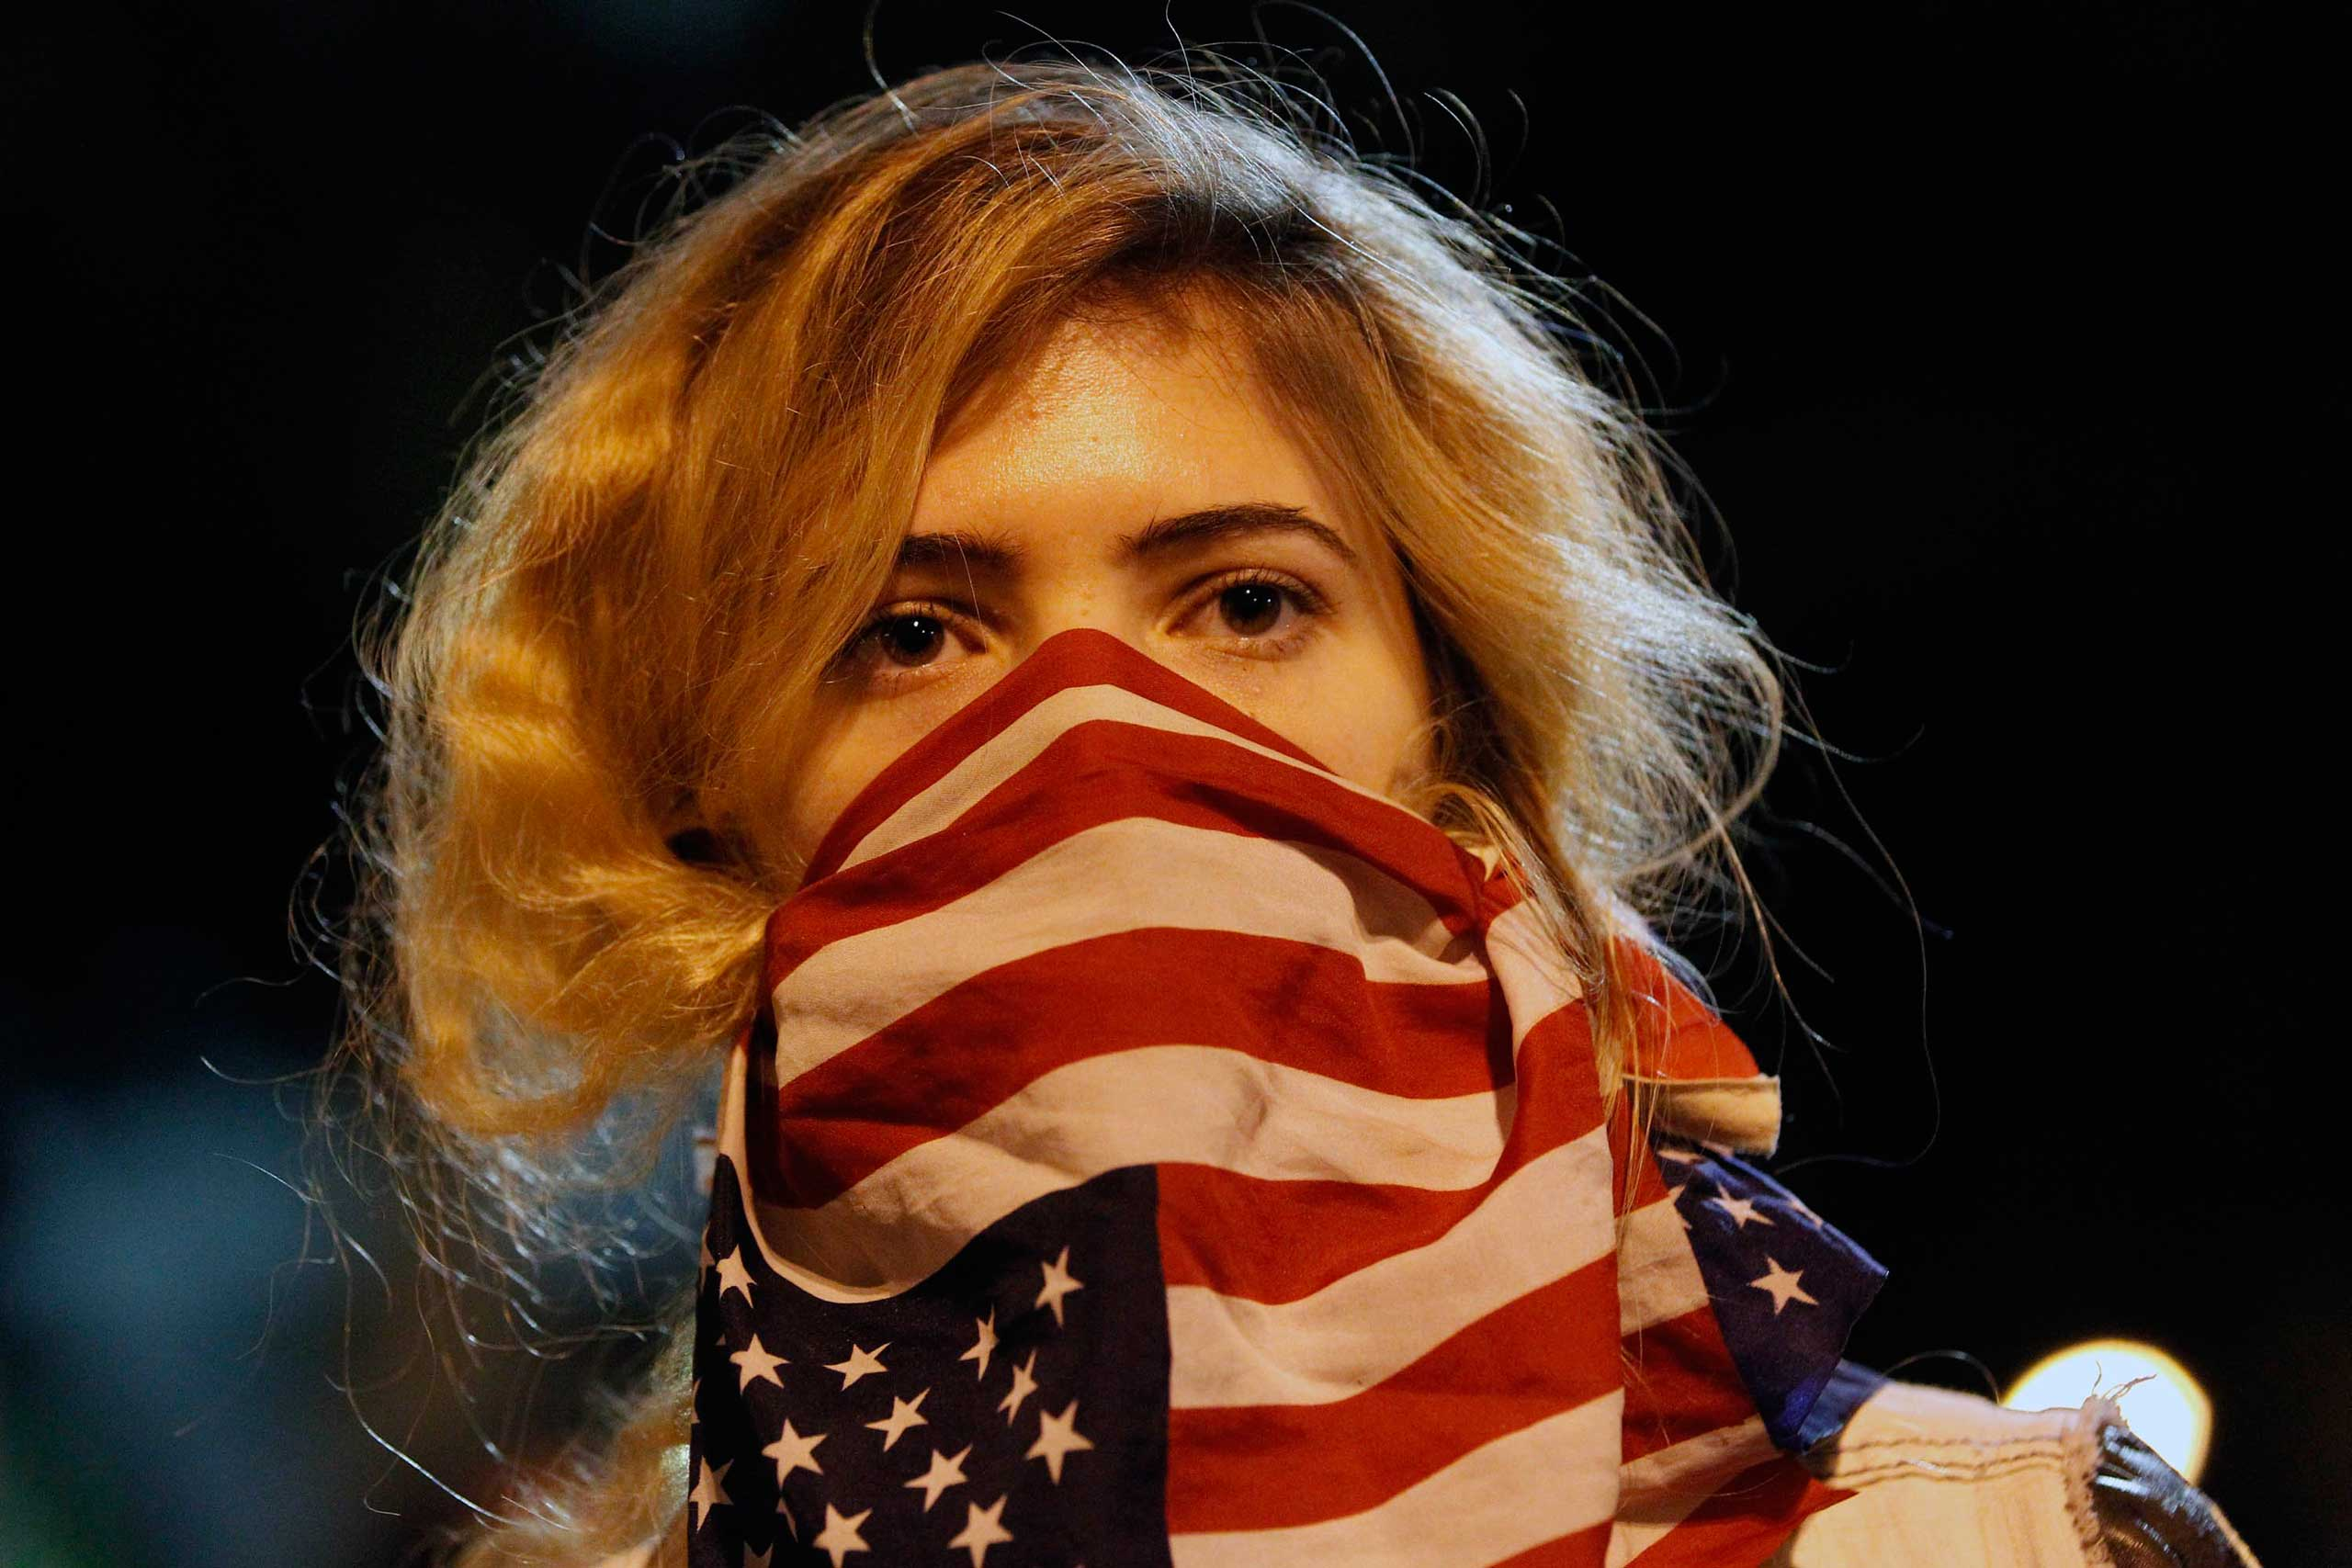 A woman wears a U.S. flag in front of her face during a rally at Los Angeles Police Department headquarters in downtown Los Angeles on Nov. 25, 2014.